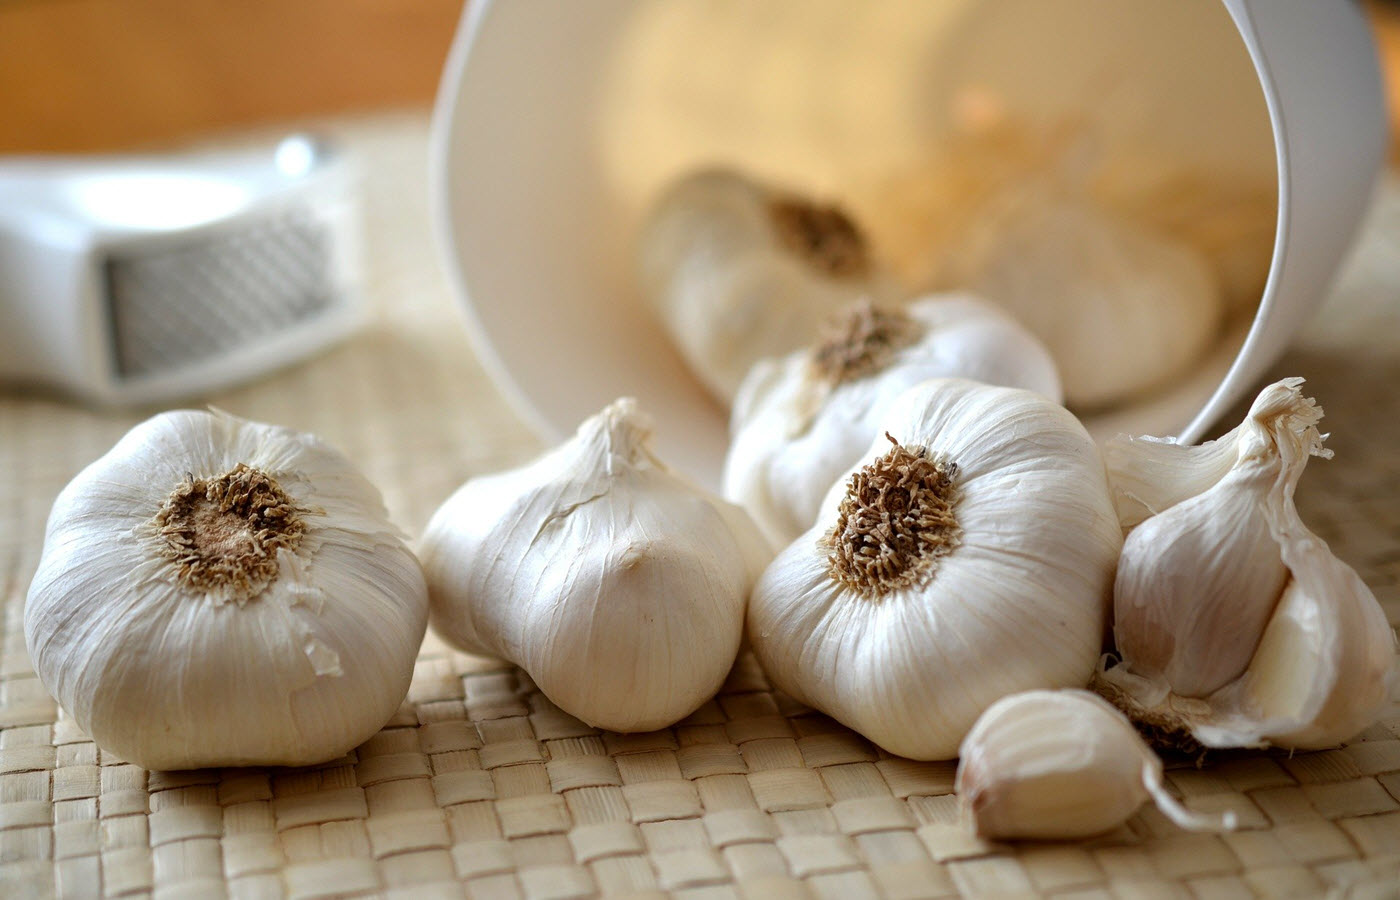 Can dogs eat garlic cloves